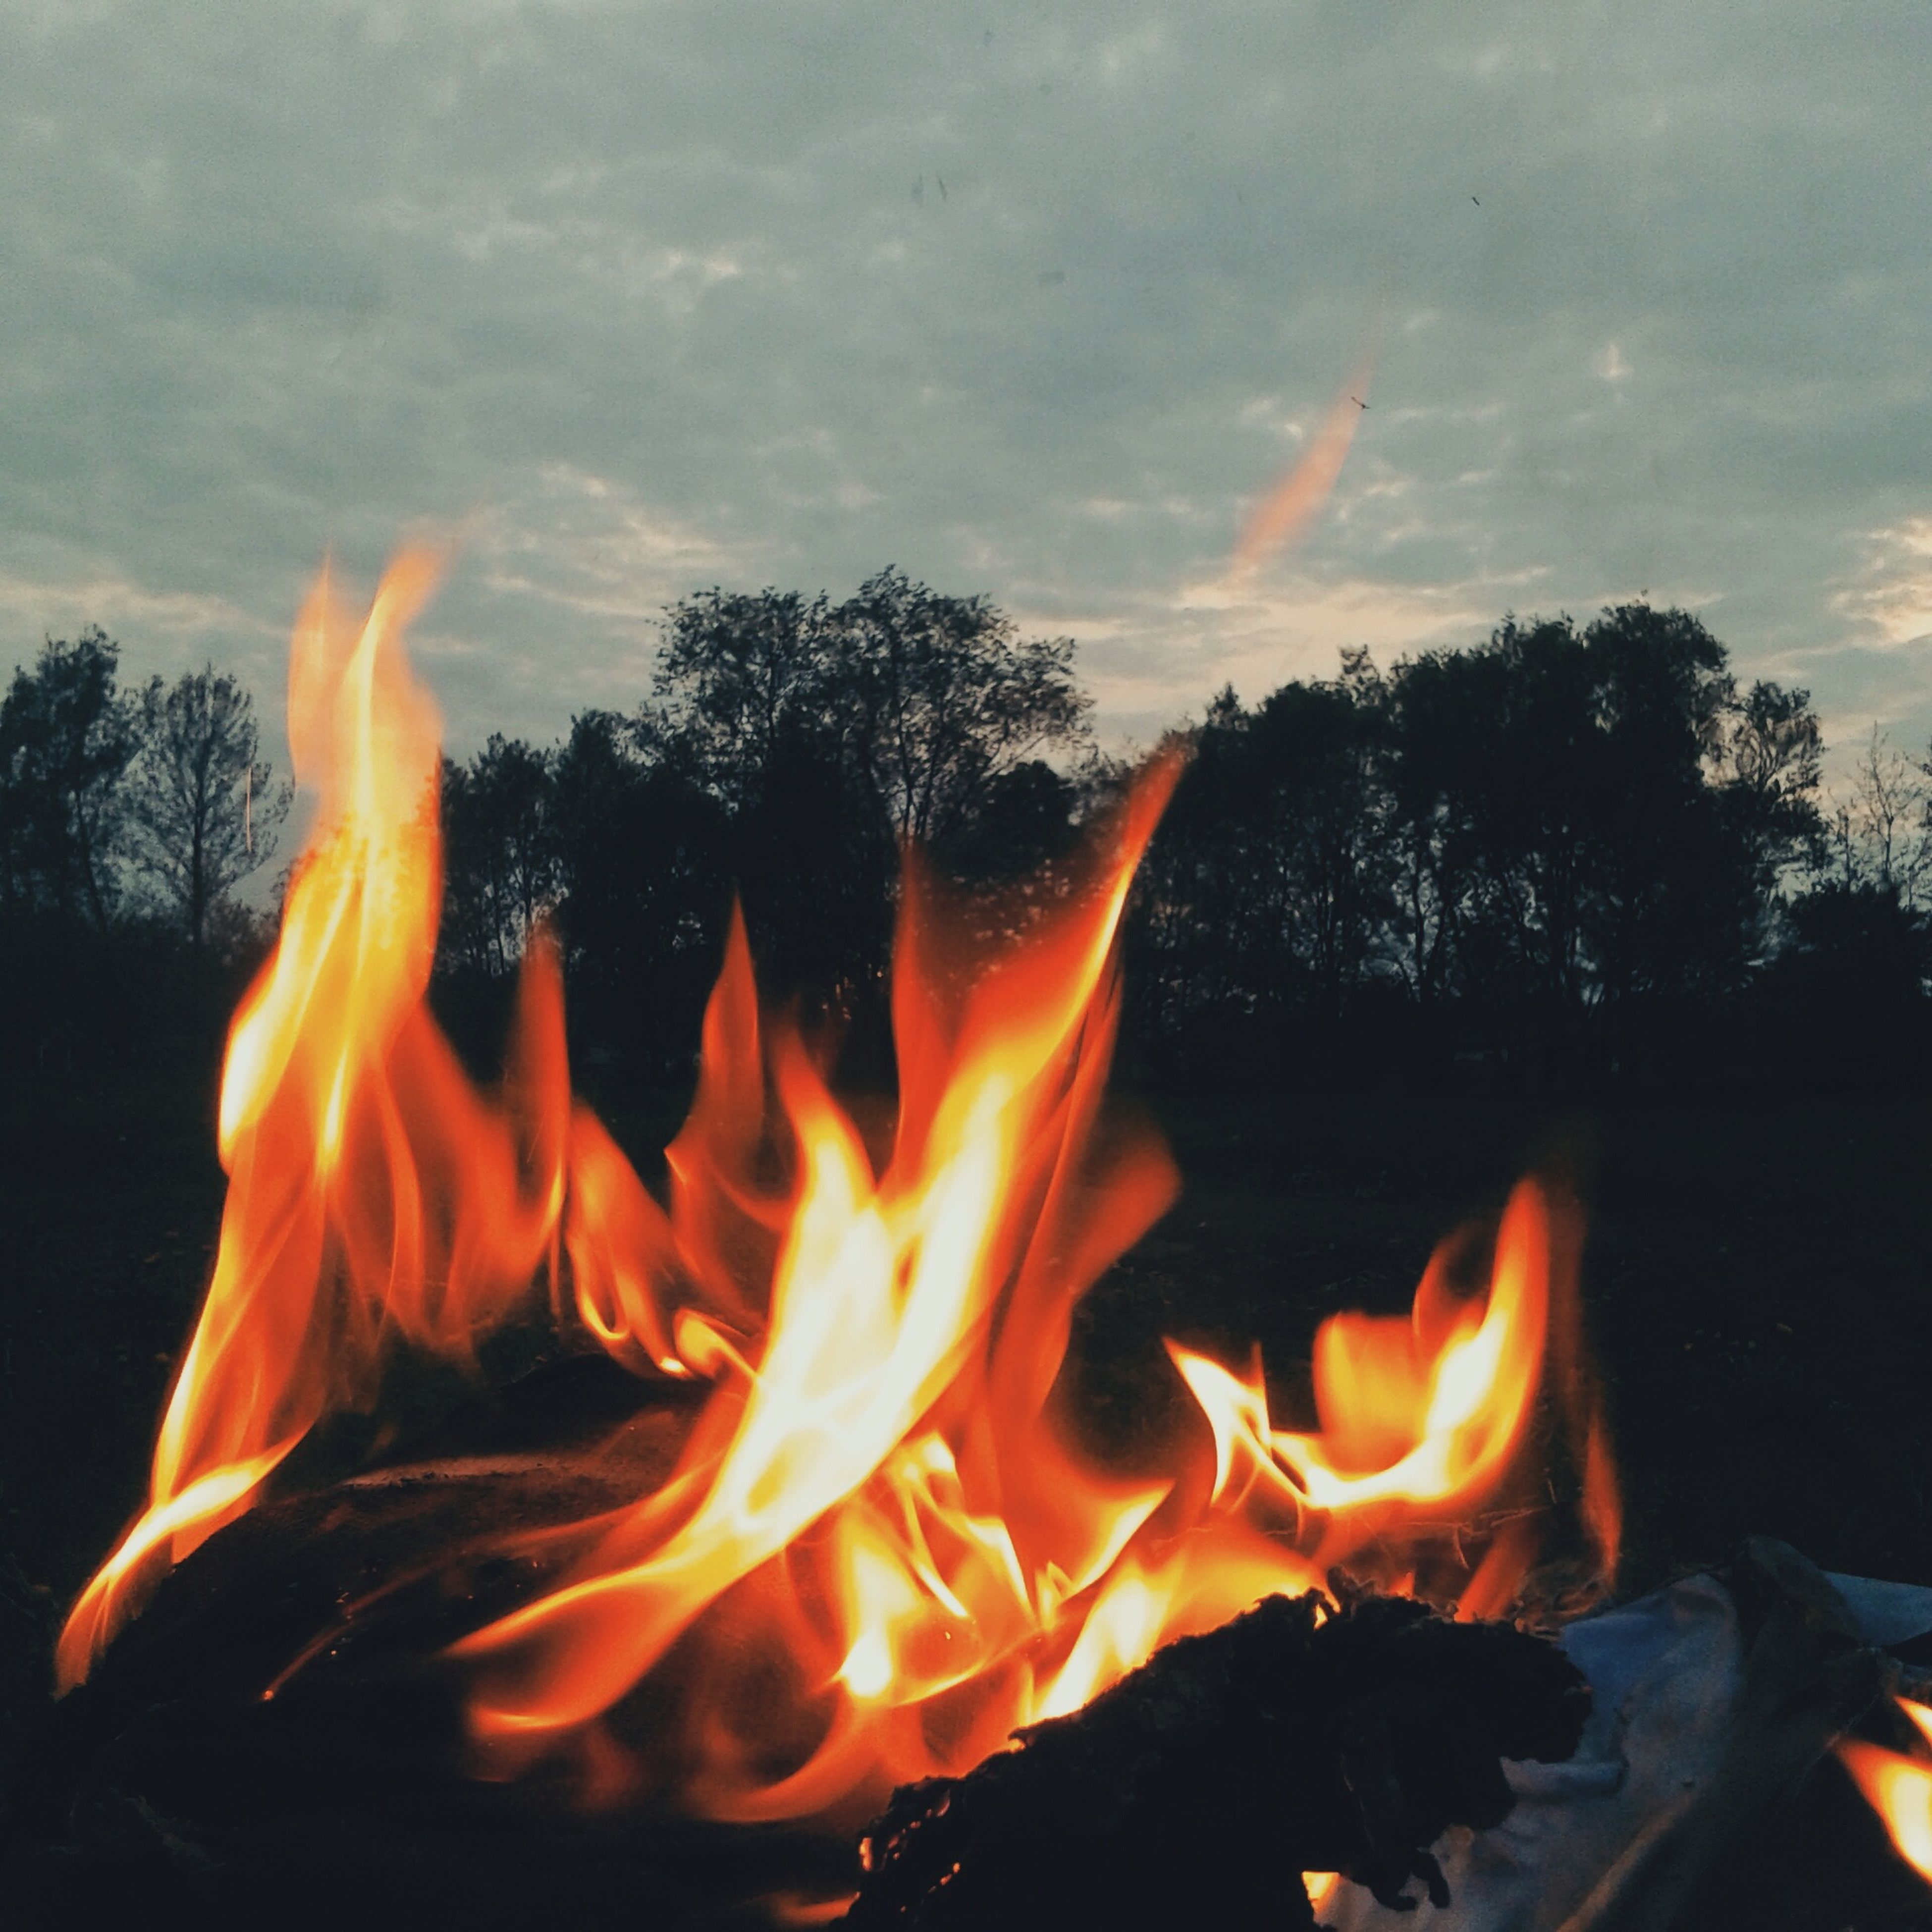 flame, burning, fire - natural phenomenon, heat - temperature, bonfire, fire, firewood, campfire, glowing, heat, orange color, tree, sunset, smoke - physical structure, outdoors, sky, close-up, motion, no people, camping